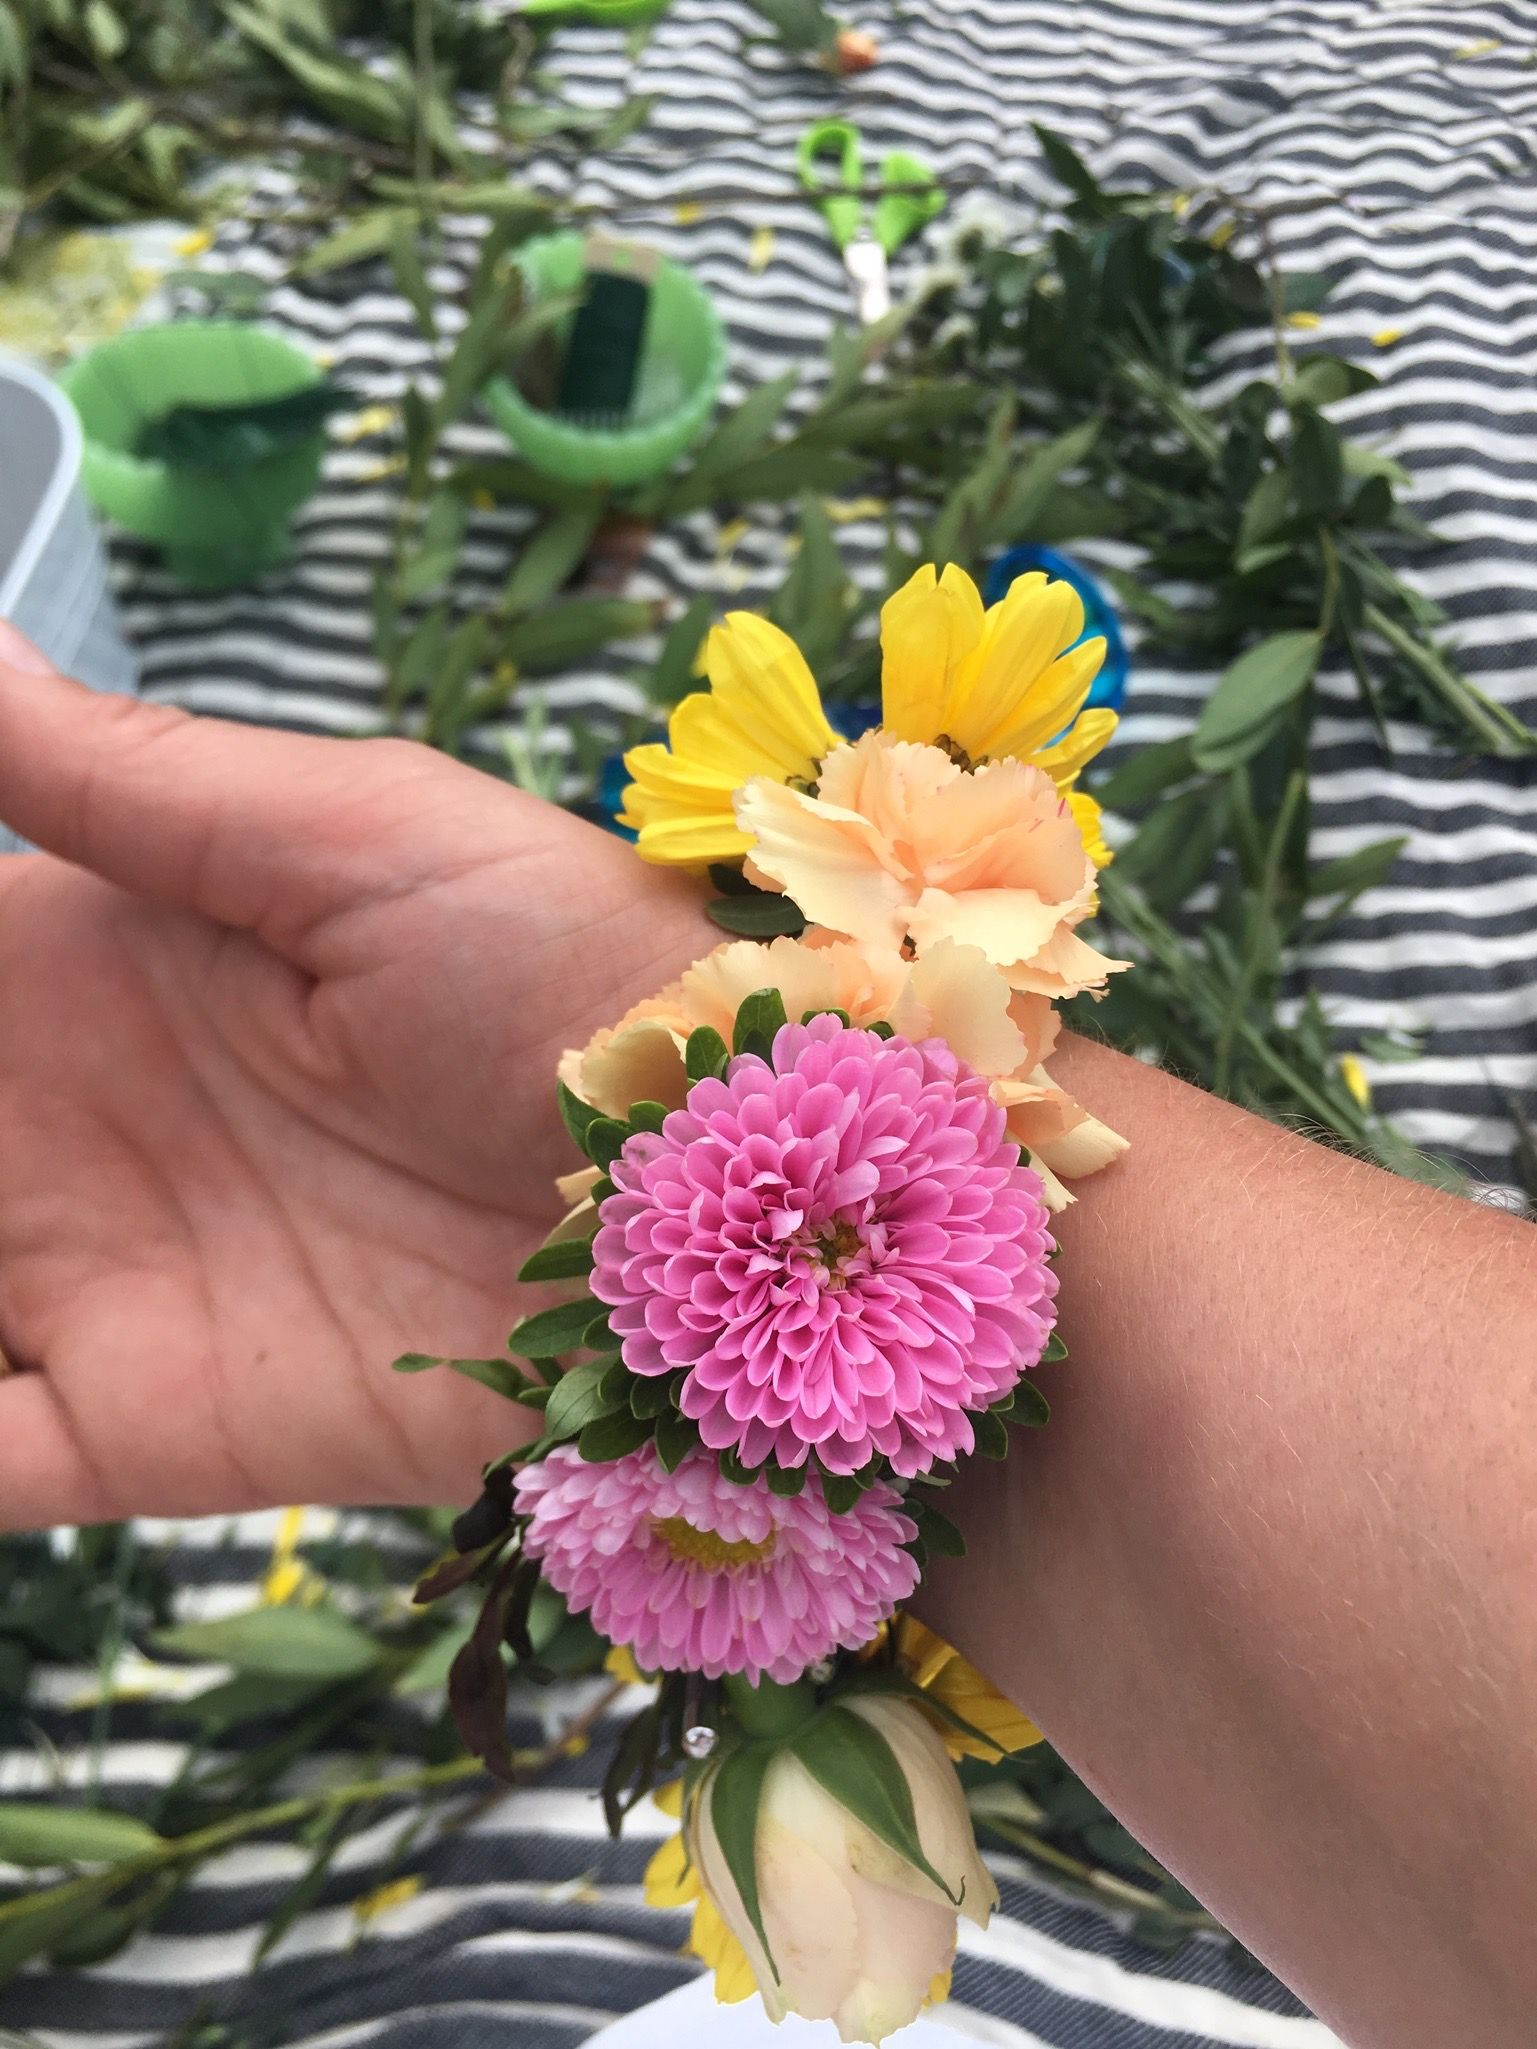 Bracelets made from real flowers fetes de fleurs flower parties lets flower party picnic style real flower bracelets real flower rings real flower crowns izmirmasajfo